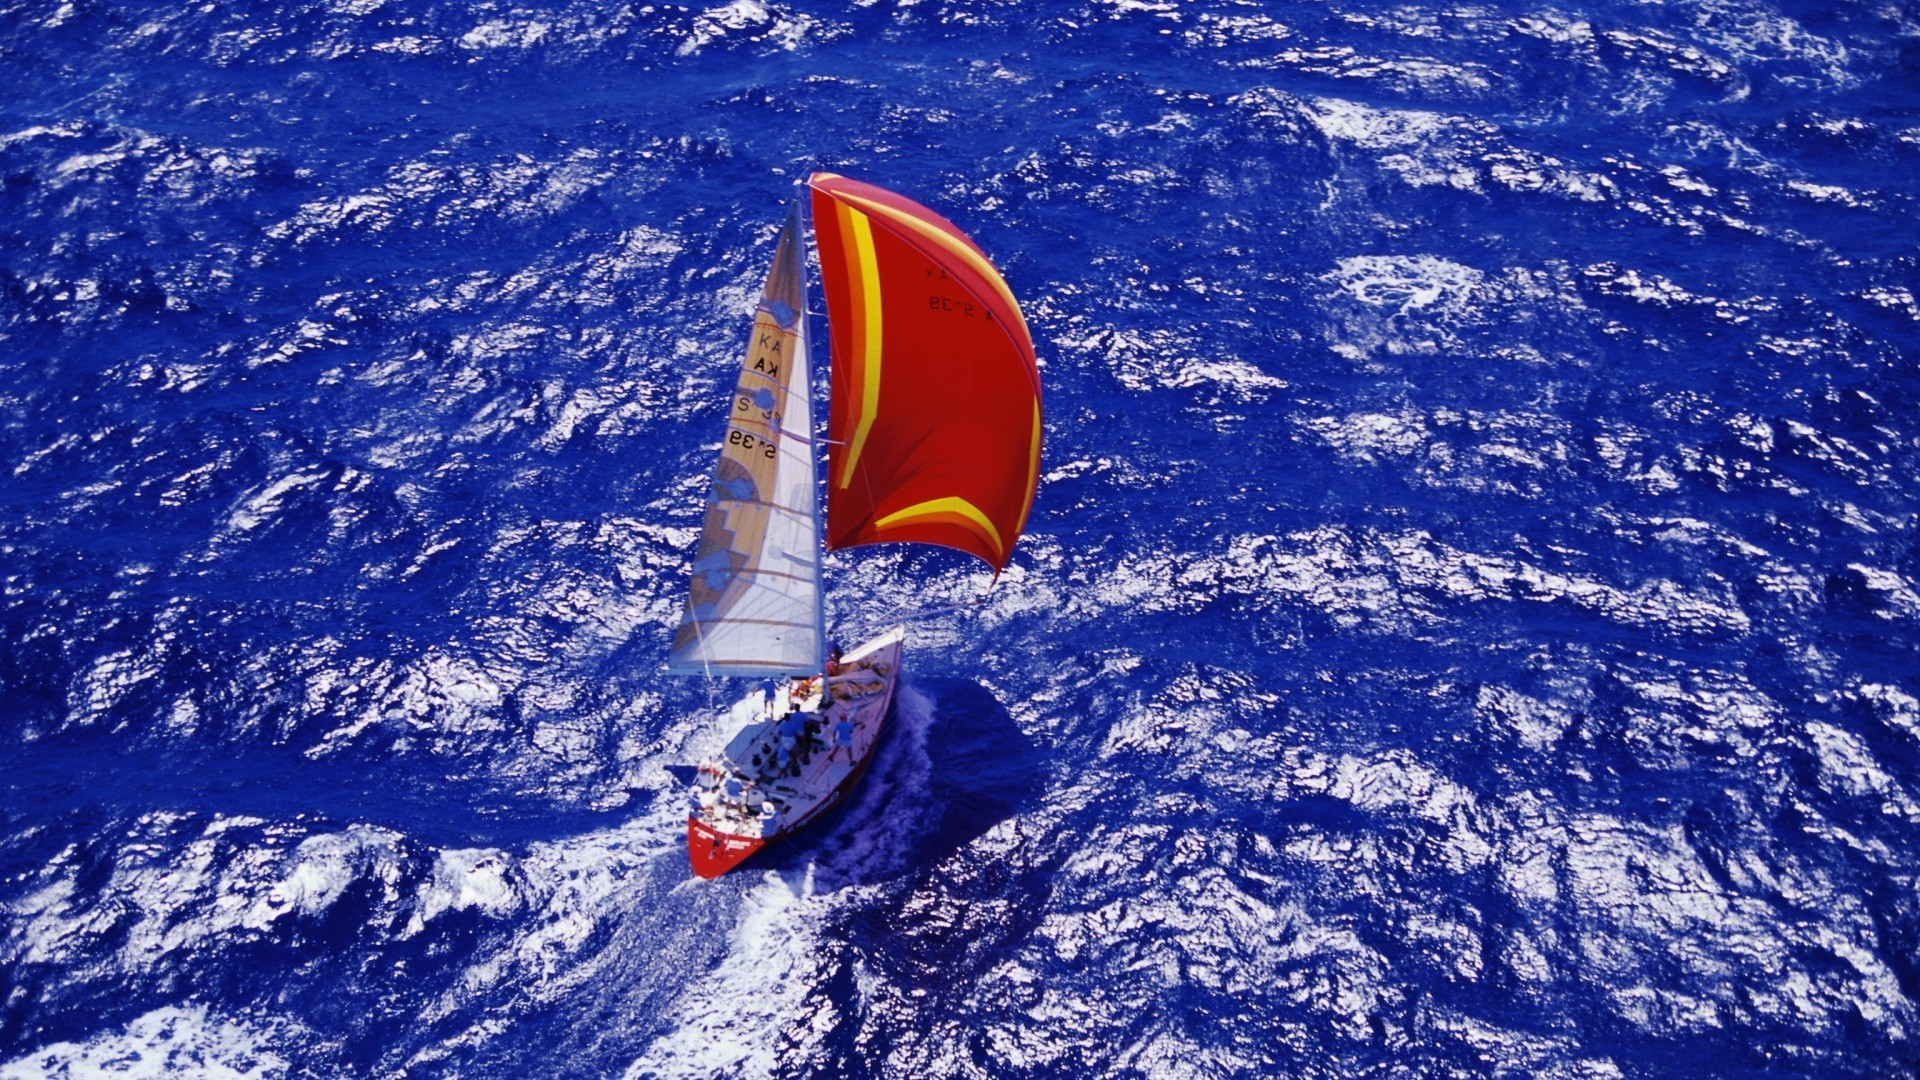 sailing snow recreation winter adventure sport exploration travel action outdoors sky cold hurry ice transportation system water leisure sports equipment resort ocean